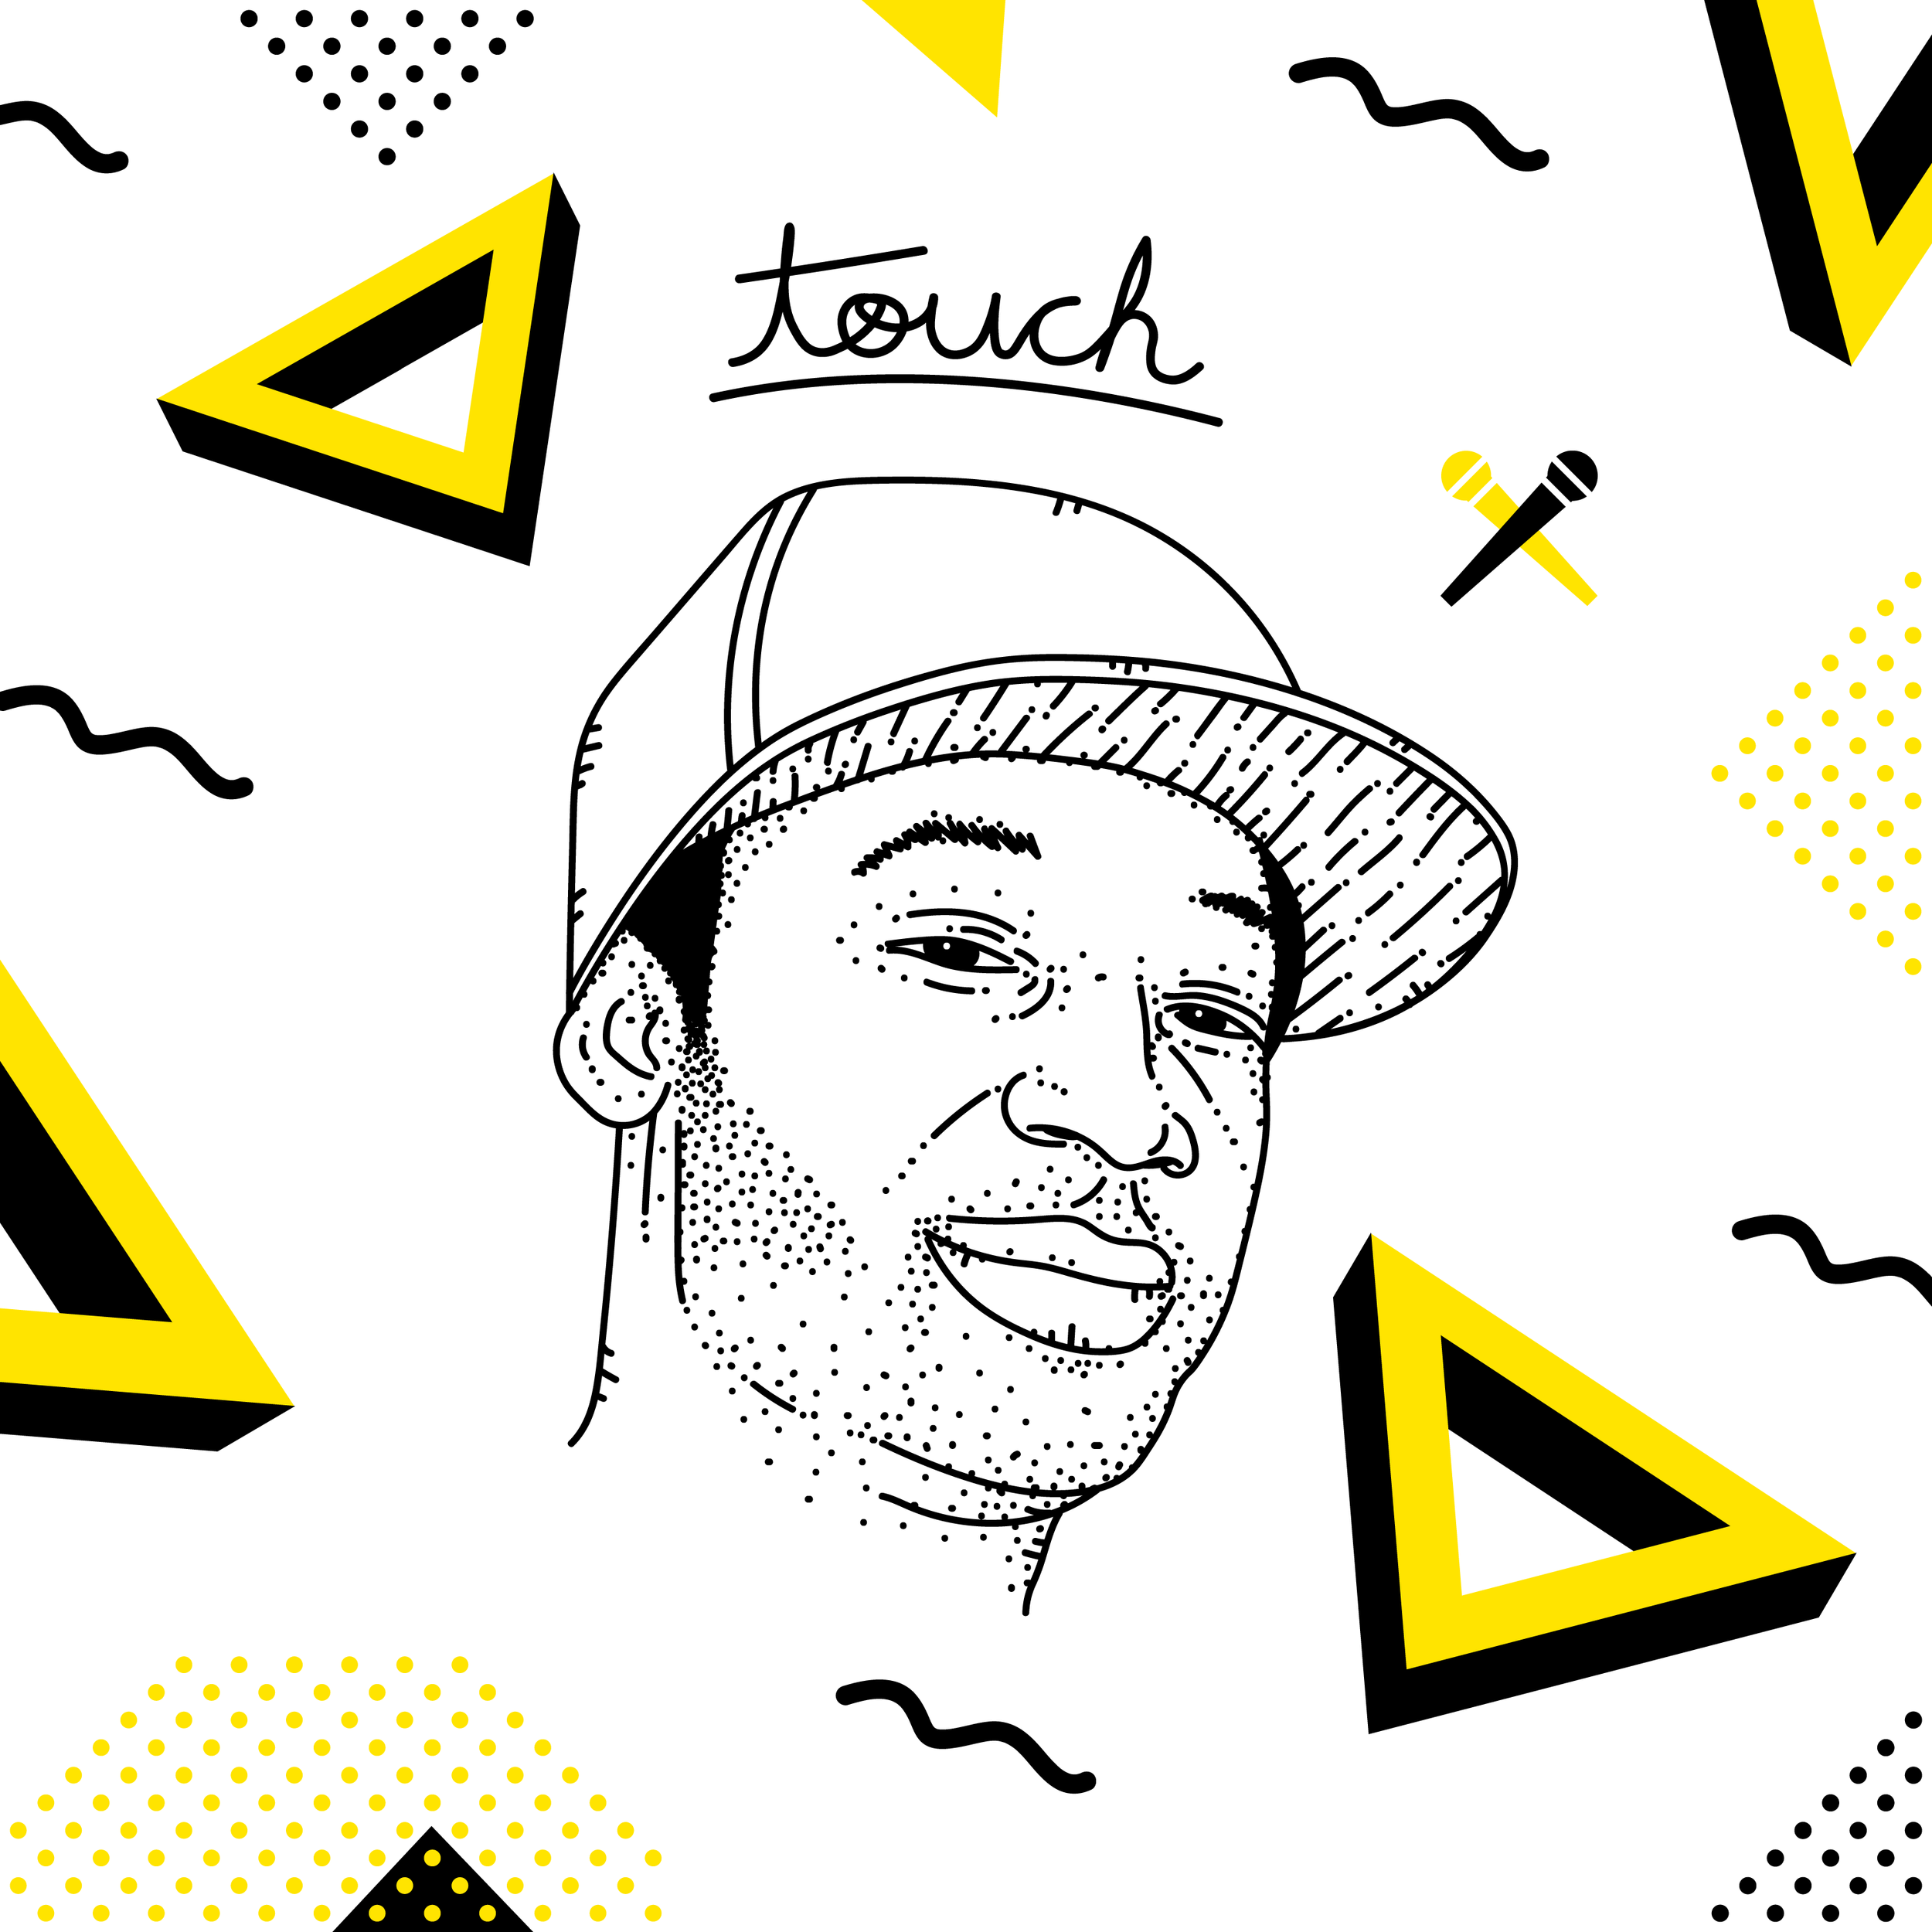 Episode 11 - tOUCH - Up In Arms / Dangerous Goods Collective